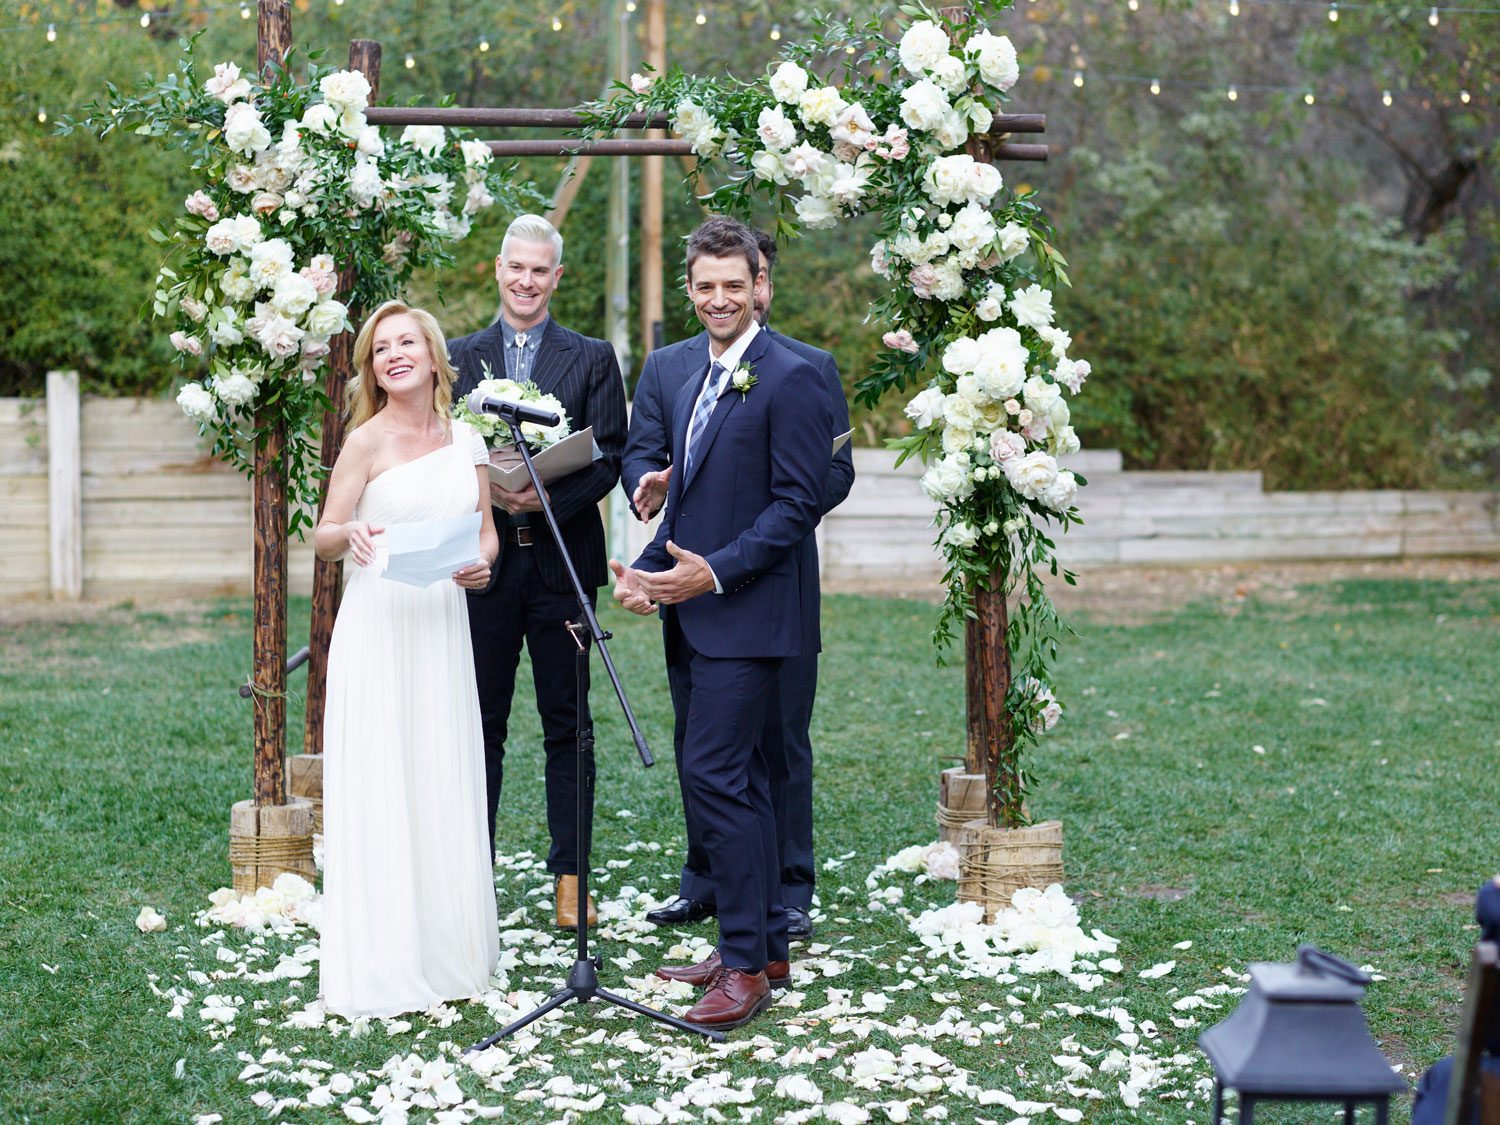 gay couple photo ideas - Angela Kinsey's Wedding Album Is Here See the First Kiss